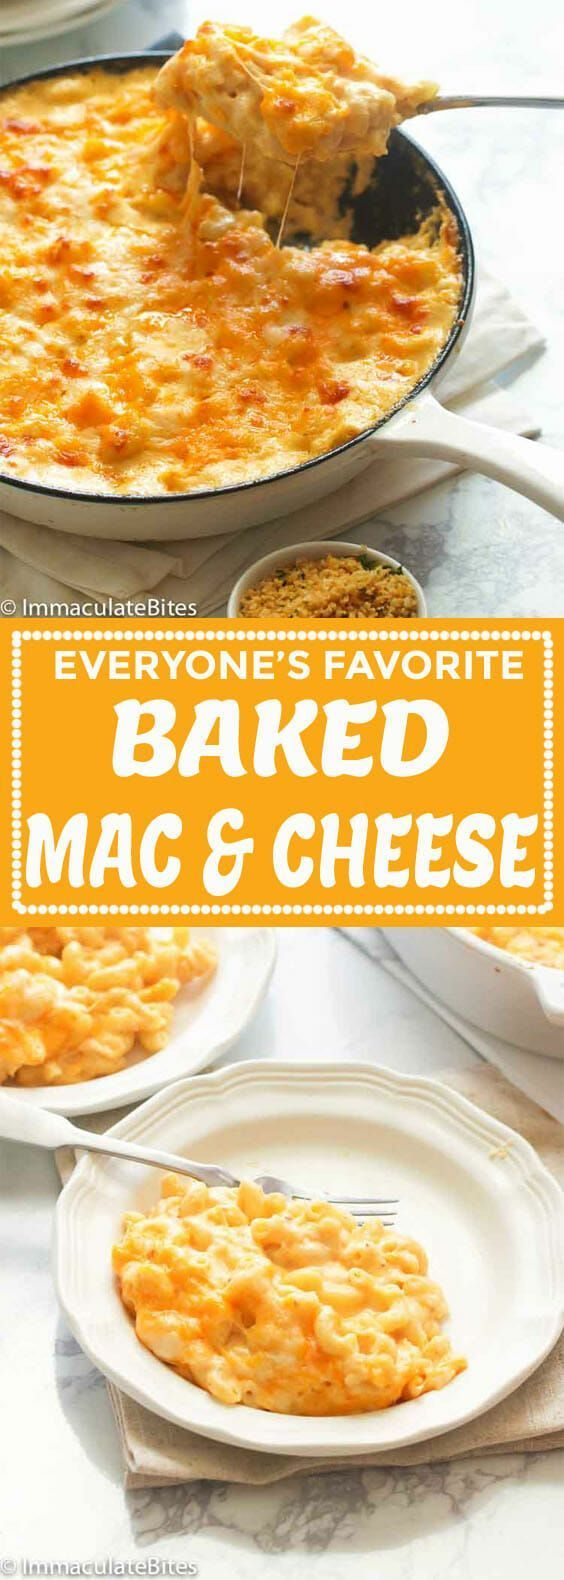 Photo of Southern Baked Mac and Cheese – Immaculate Bites